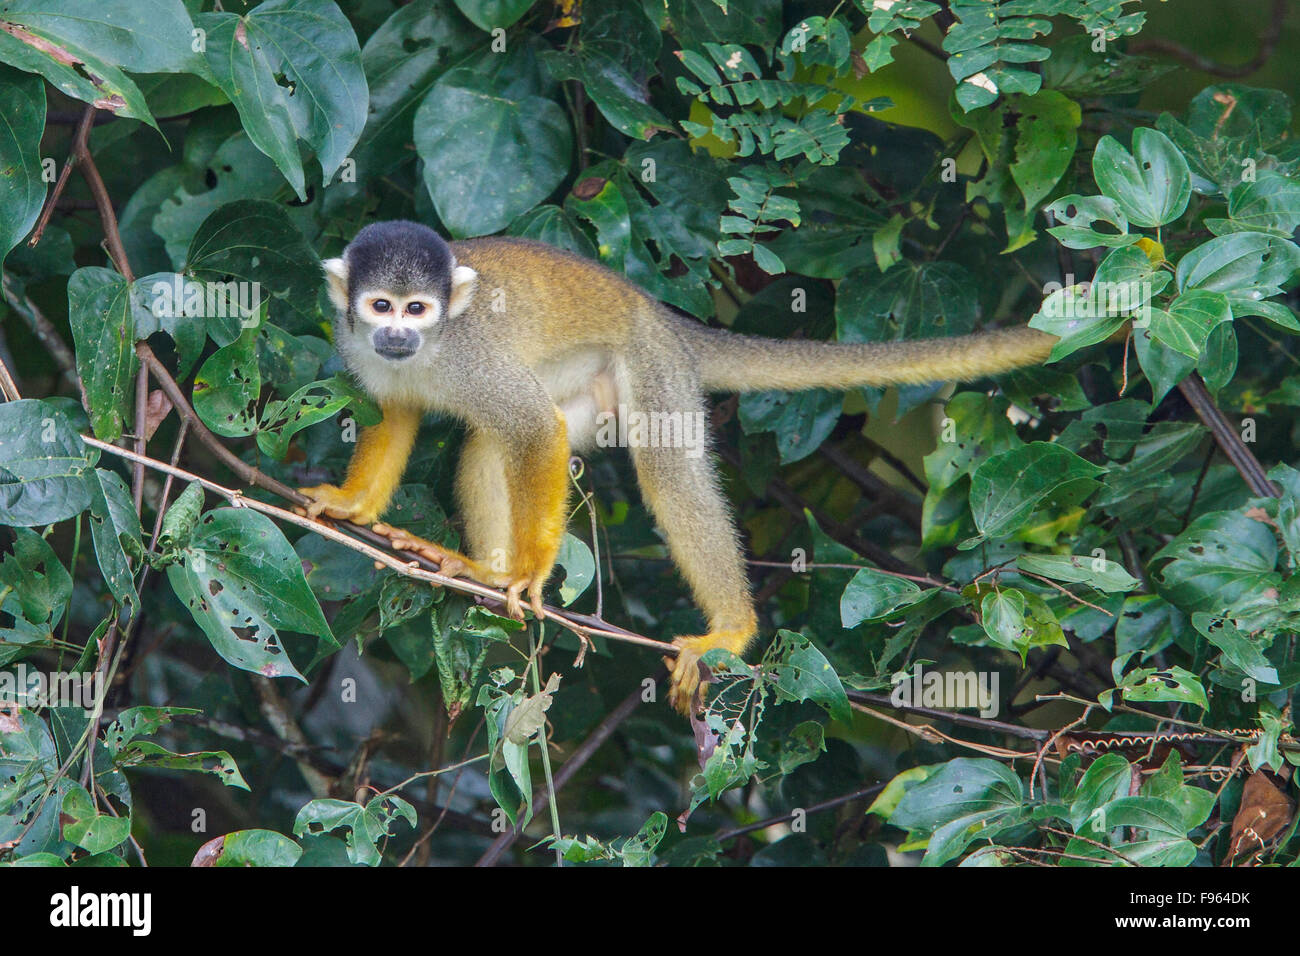 A Squirrel Monkey perched on a branch in Manu National Park, Peru. - Stock Image